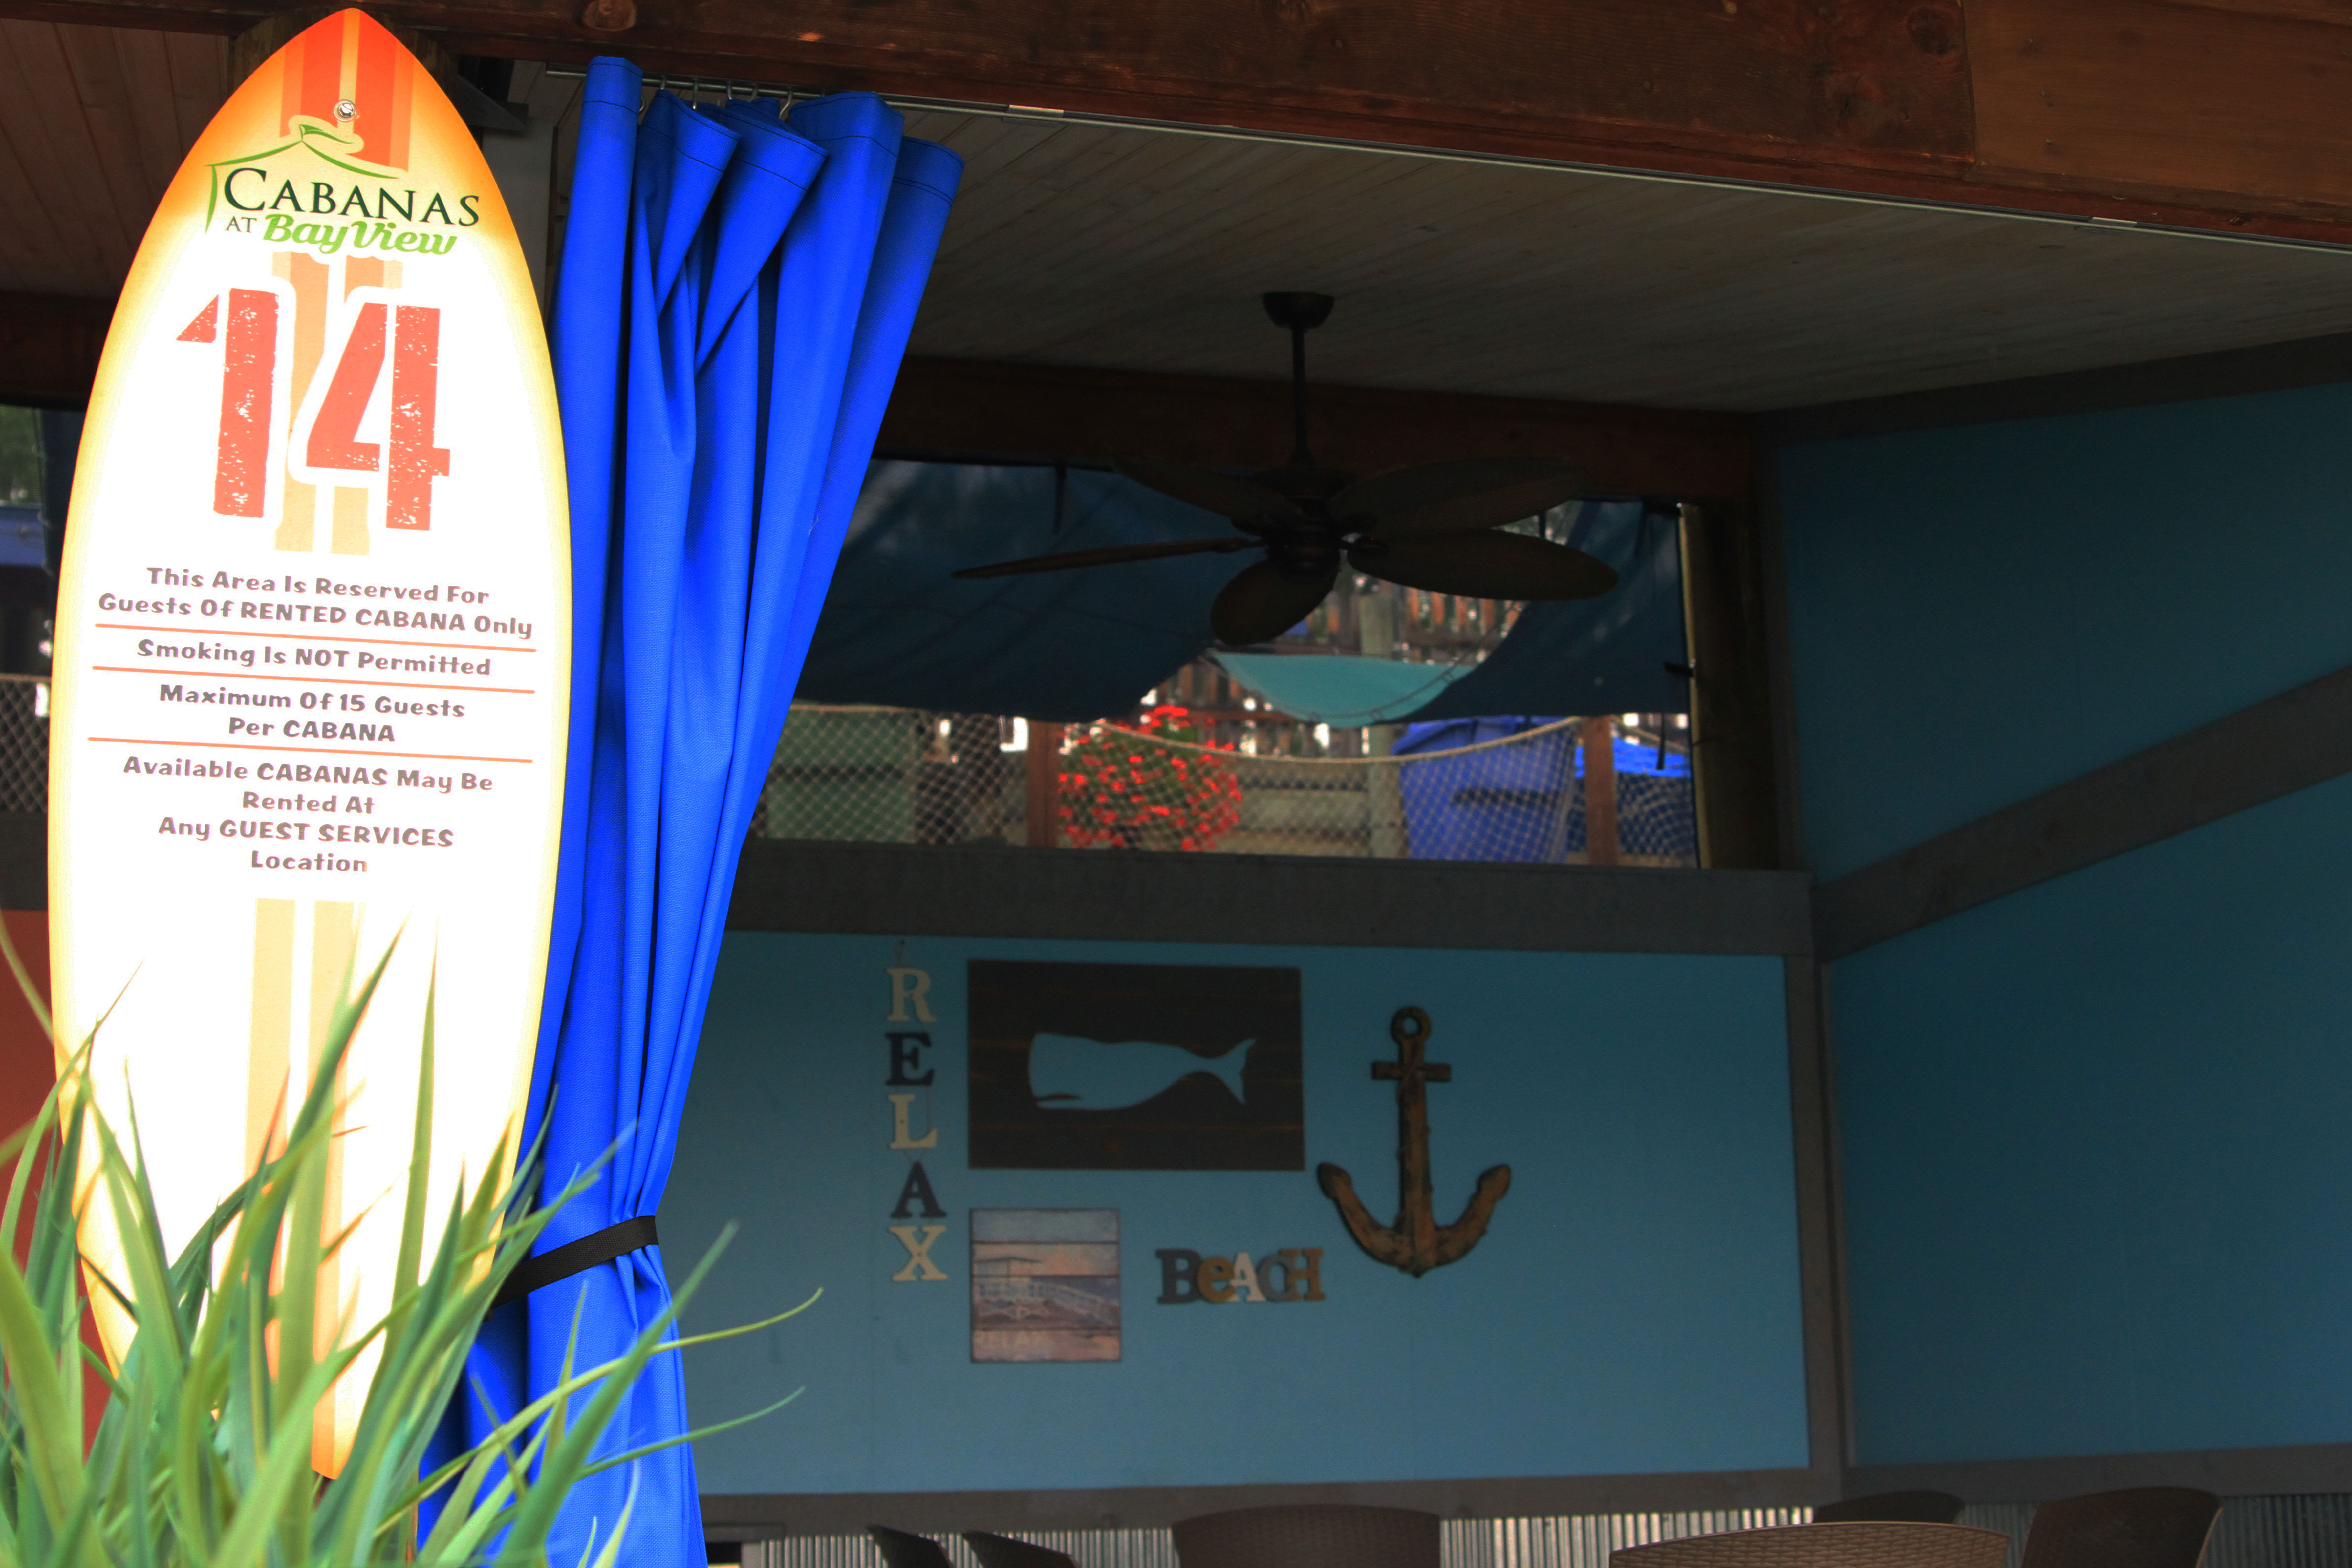 Inside view of a Cabana at Bay View with ceiling fan